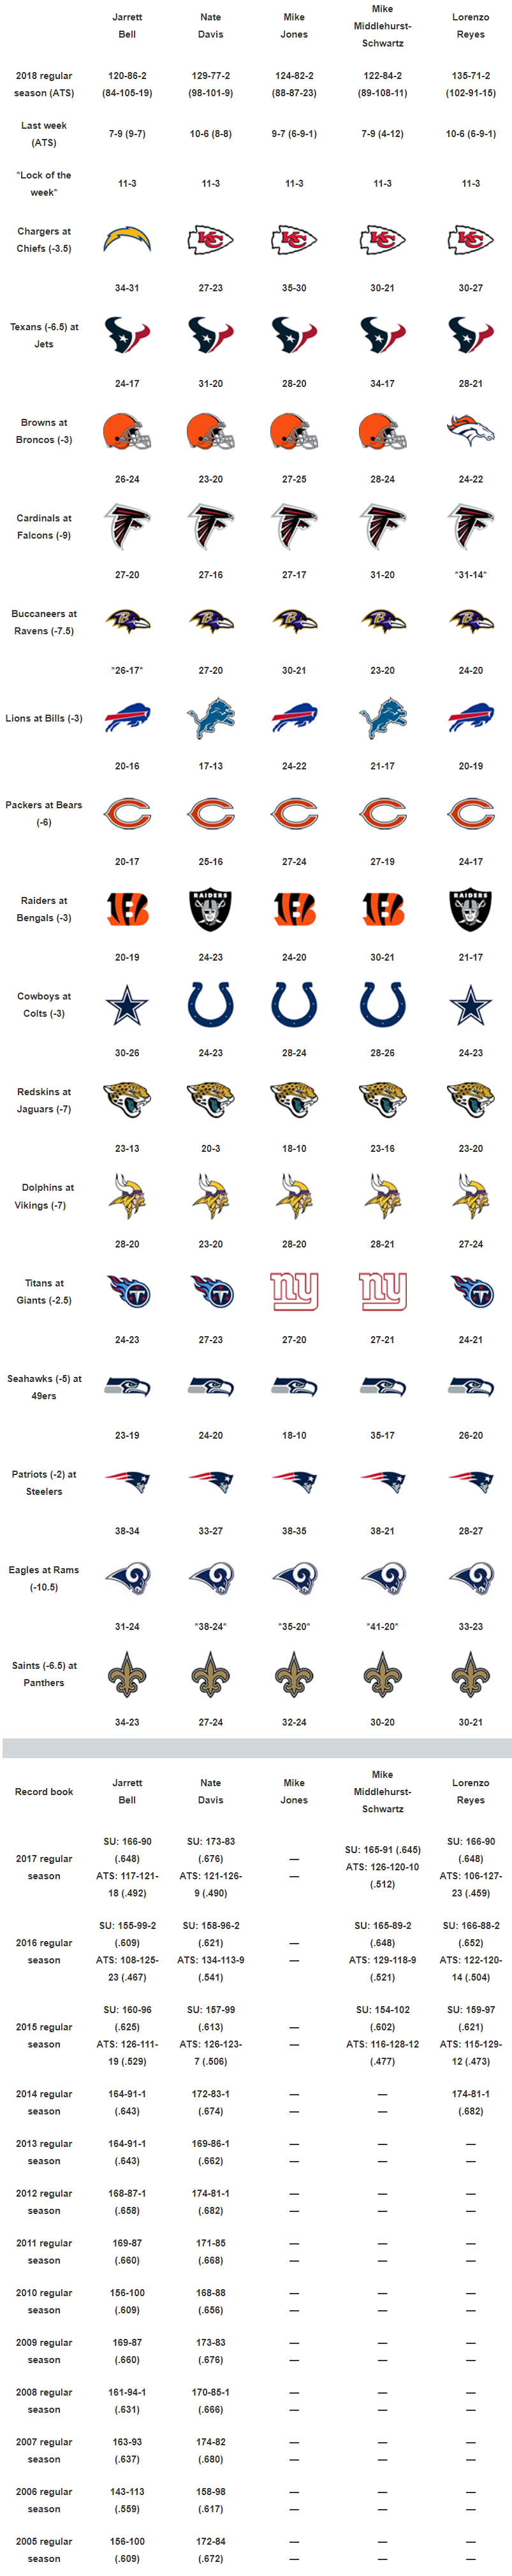 Usa Today Week 15 Nfl Picks Do Cowboys Stay Hot Against Colts